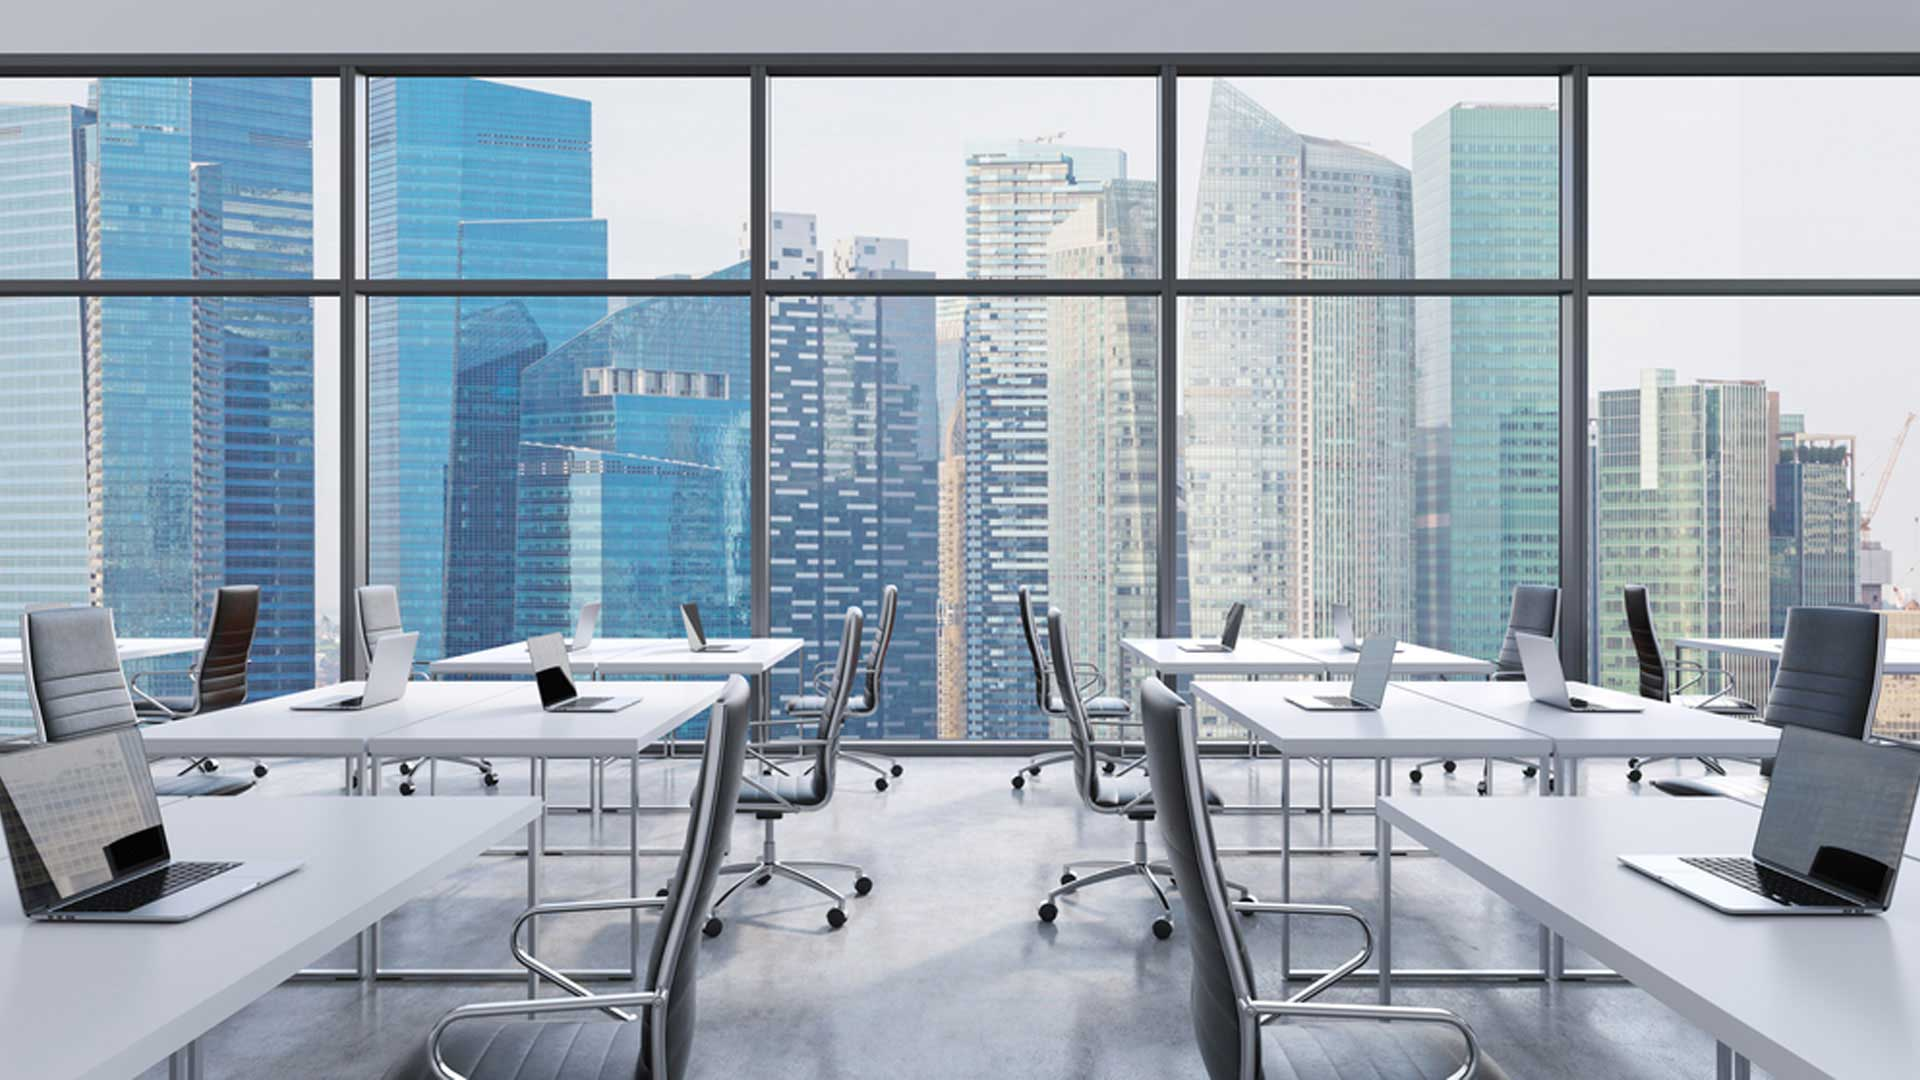 Office Space Mumbai- DBS set to lease 1 lakh sq ft in Nariman Point.